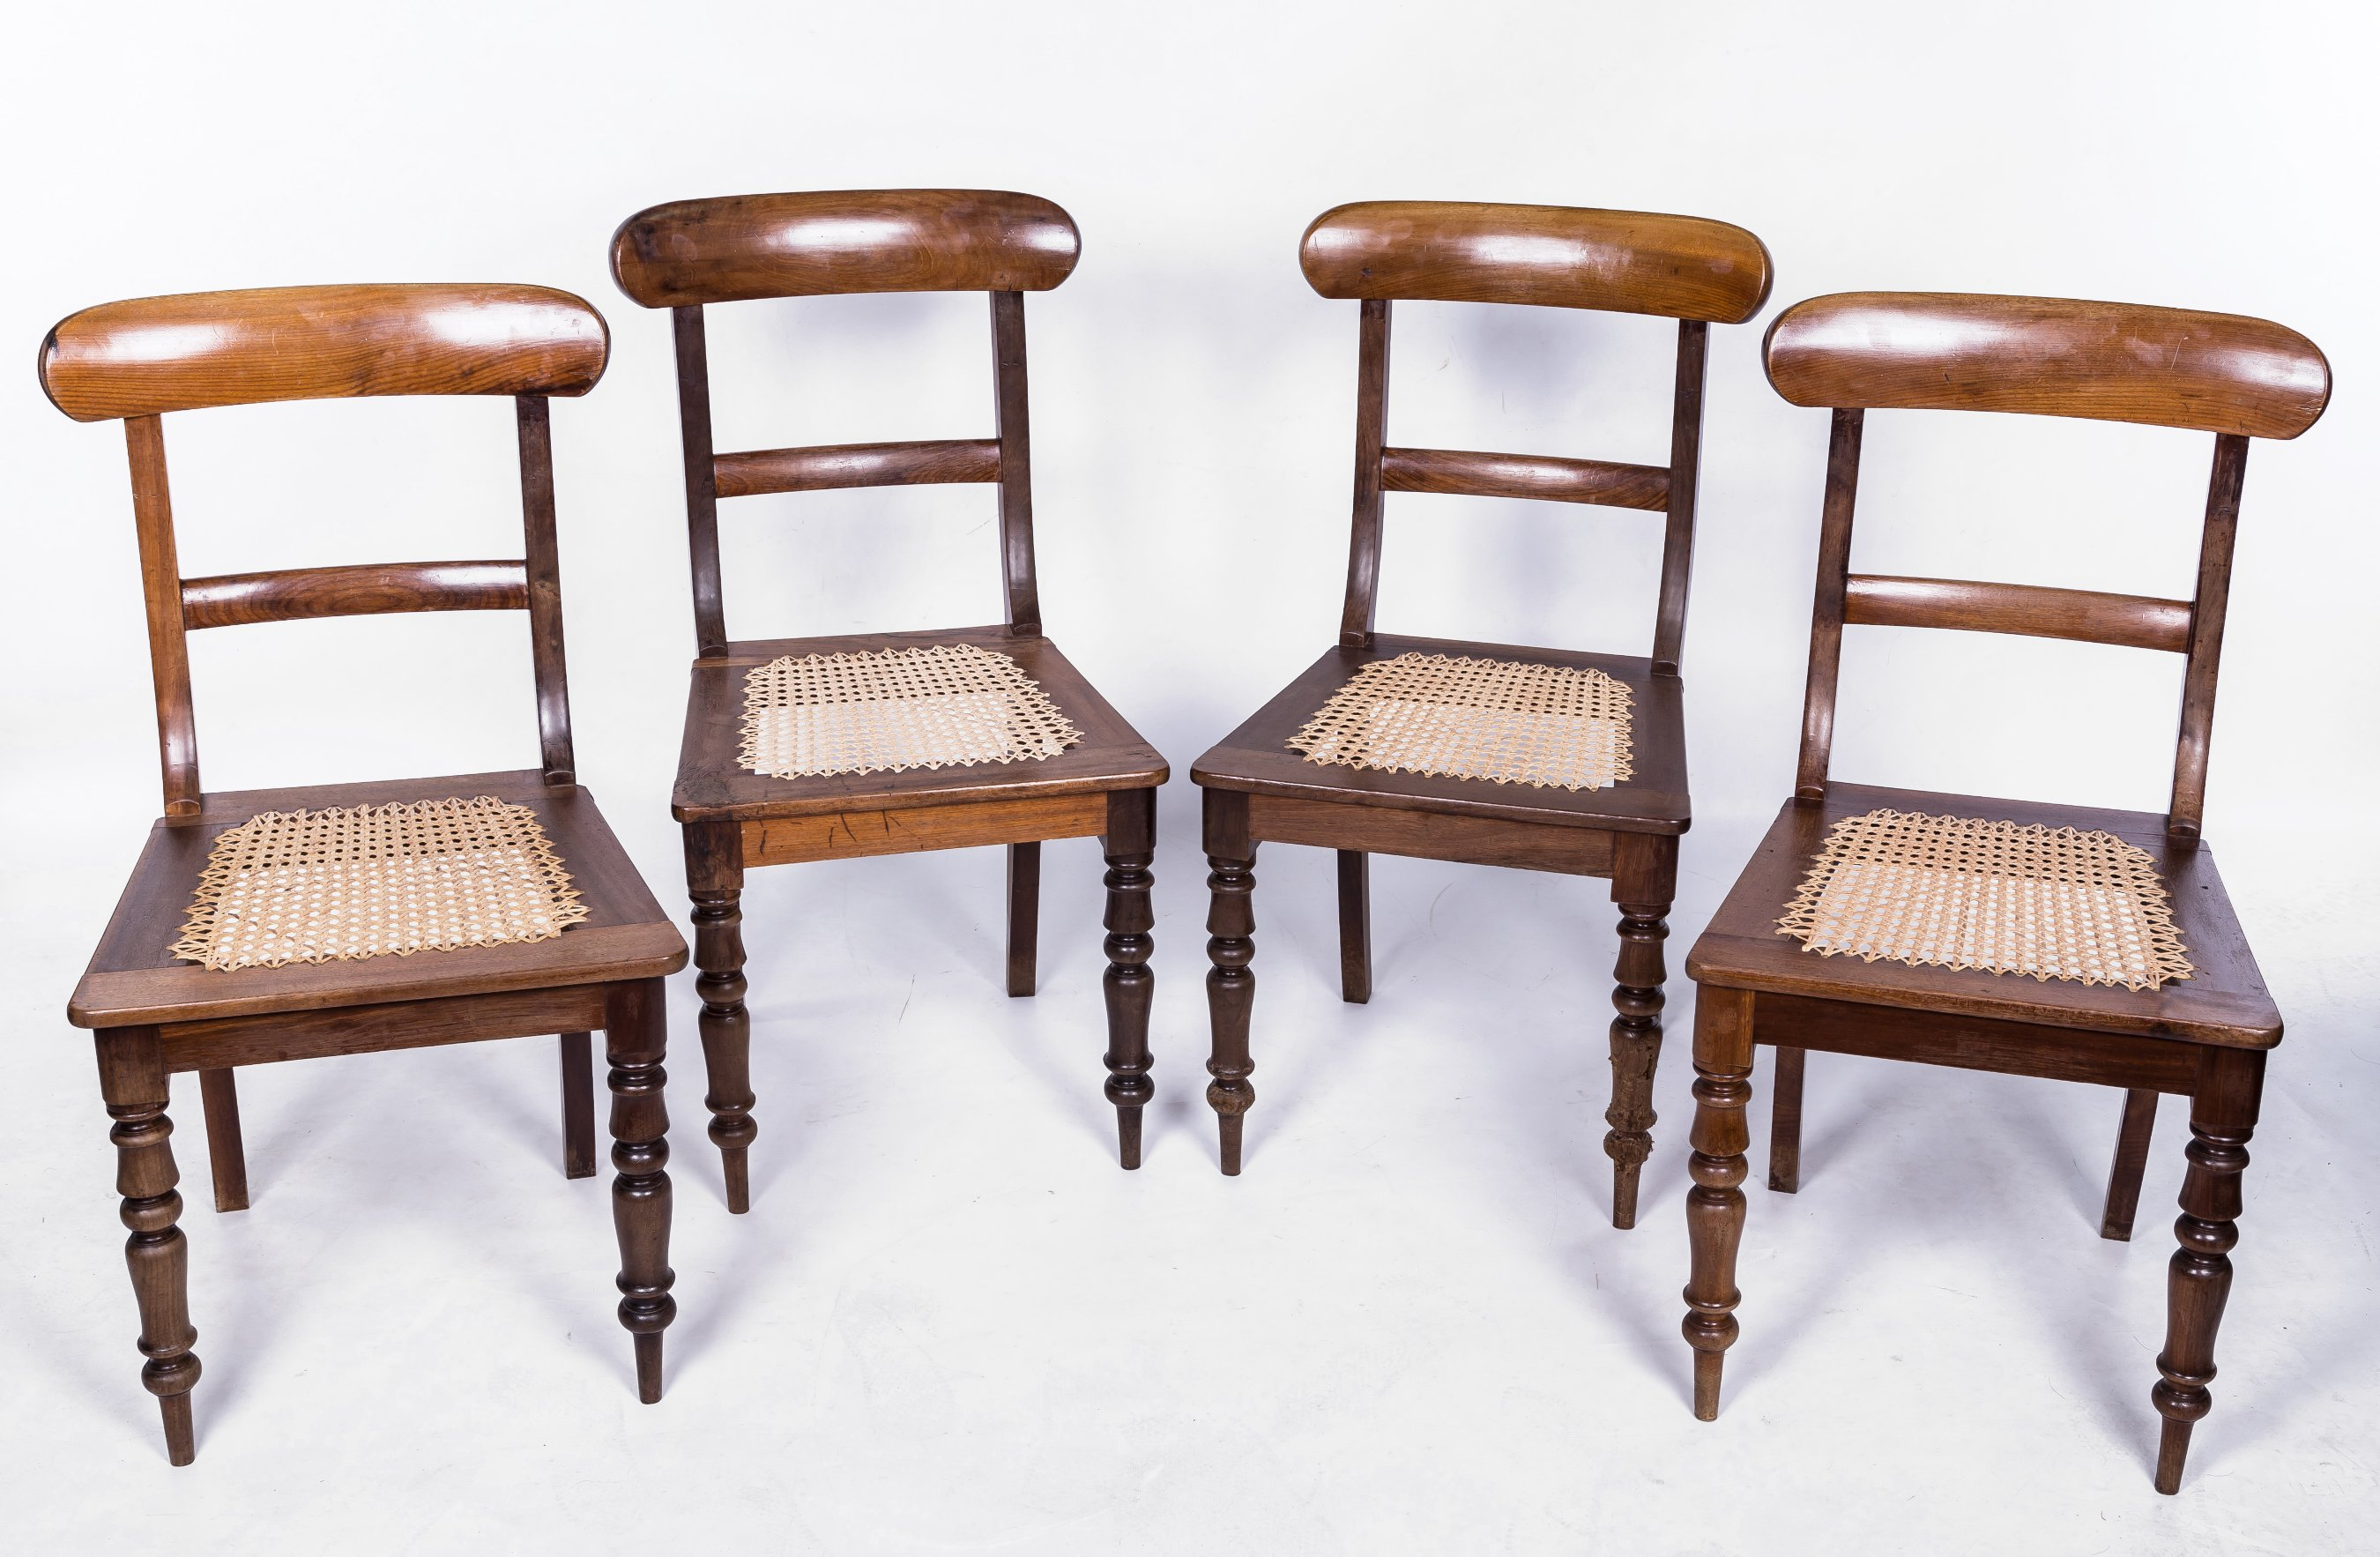 Cane Chair Repair and Restoration